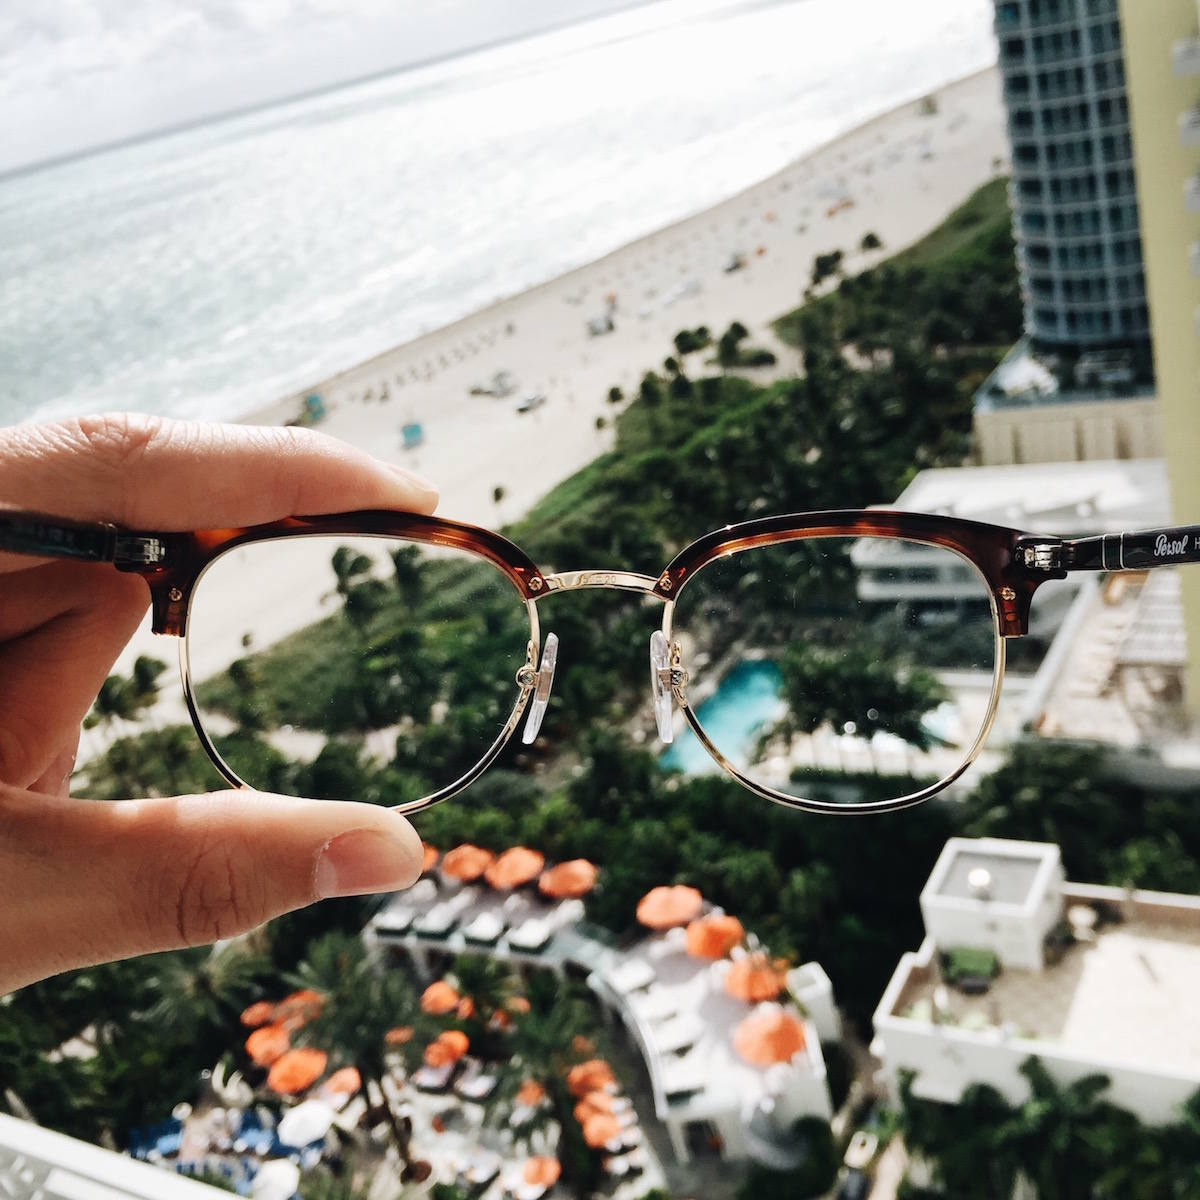 Art Basel Miami through the Persol Lens